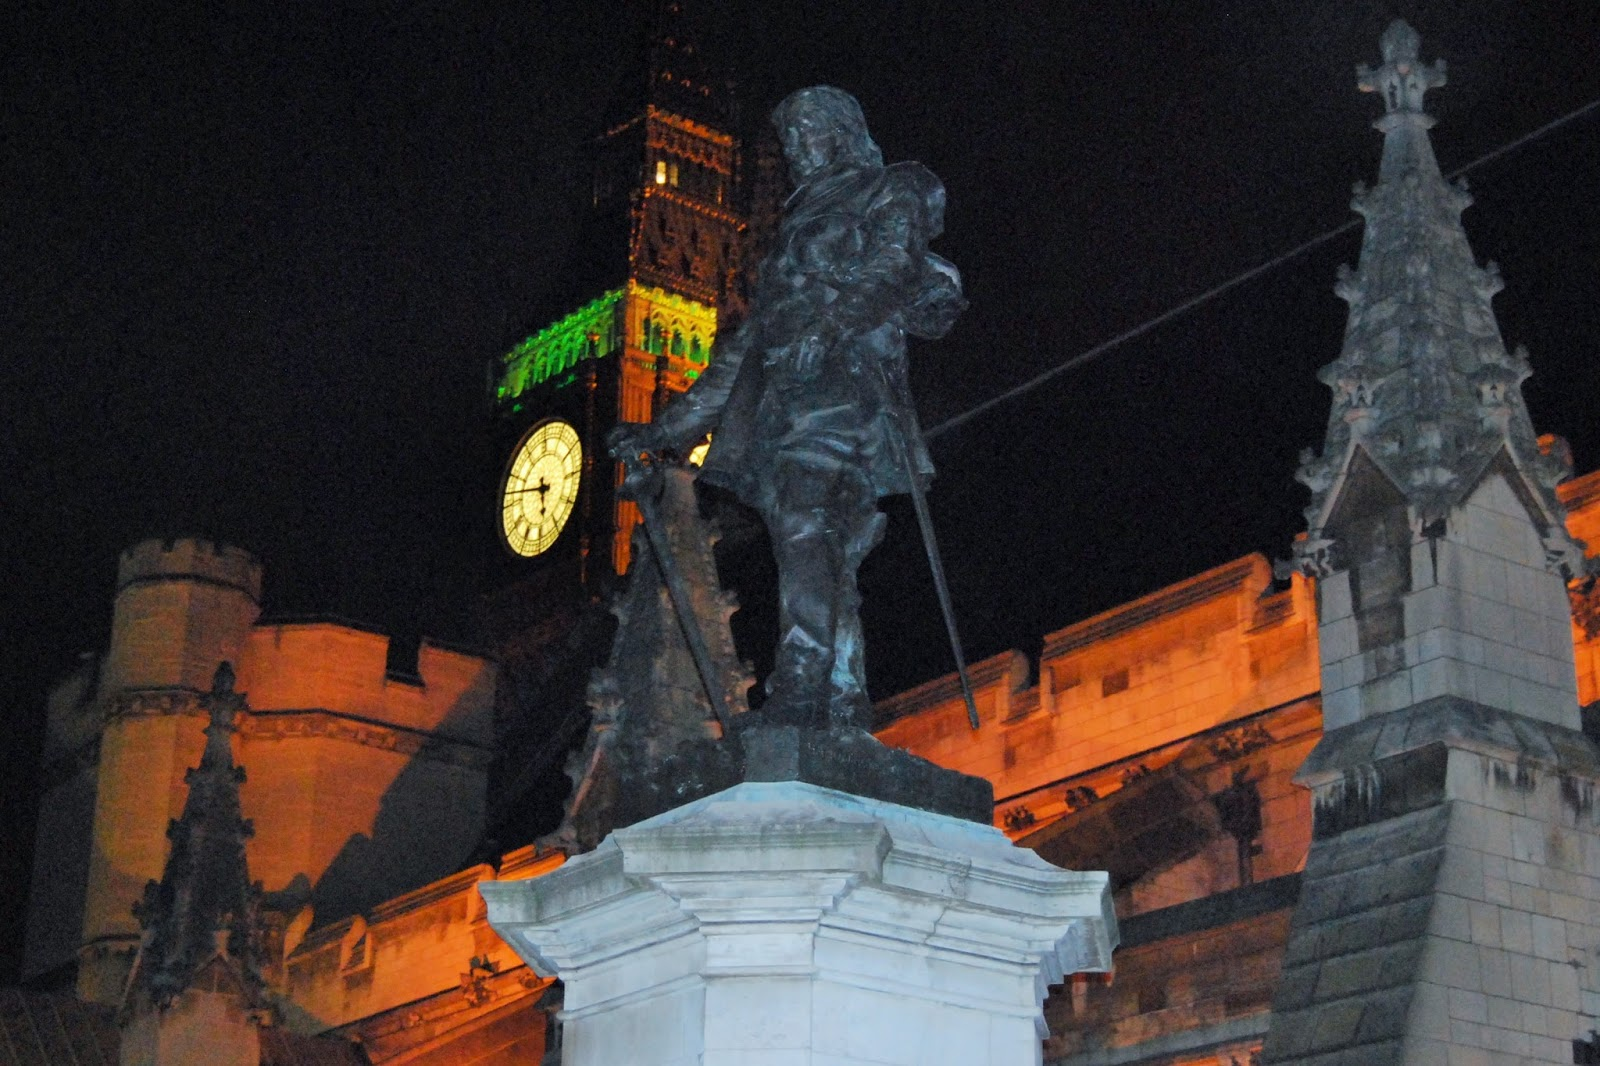 Big Ben and Oliver Cromwell, 5050Parliament, photo by Modern Bric a Brac